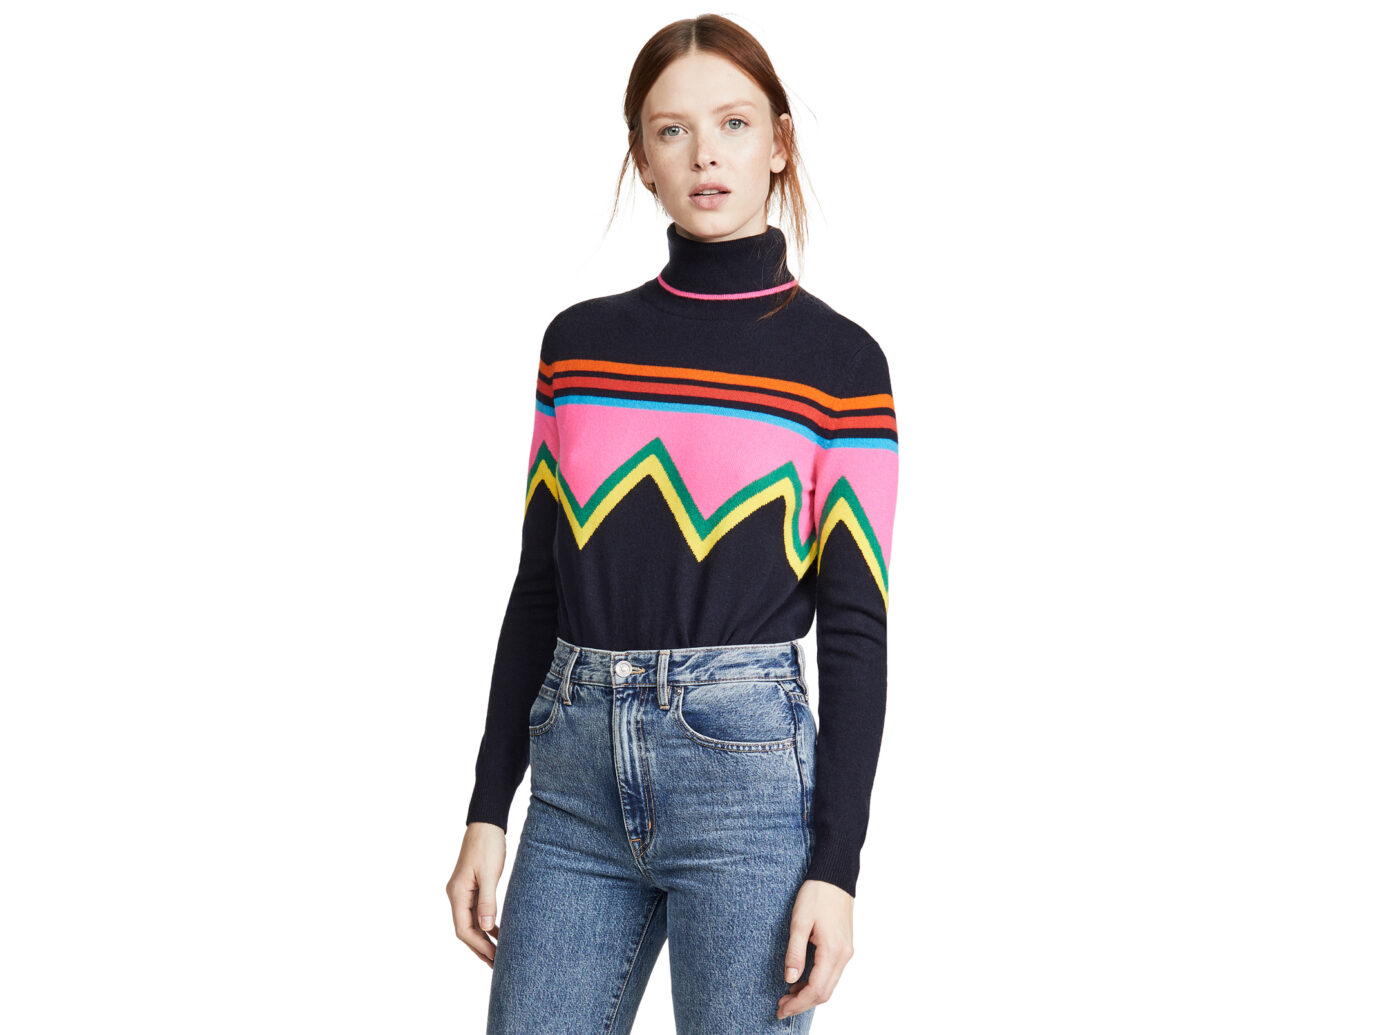 Chinti and Parker Ski Slope Sweater